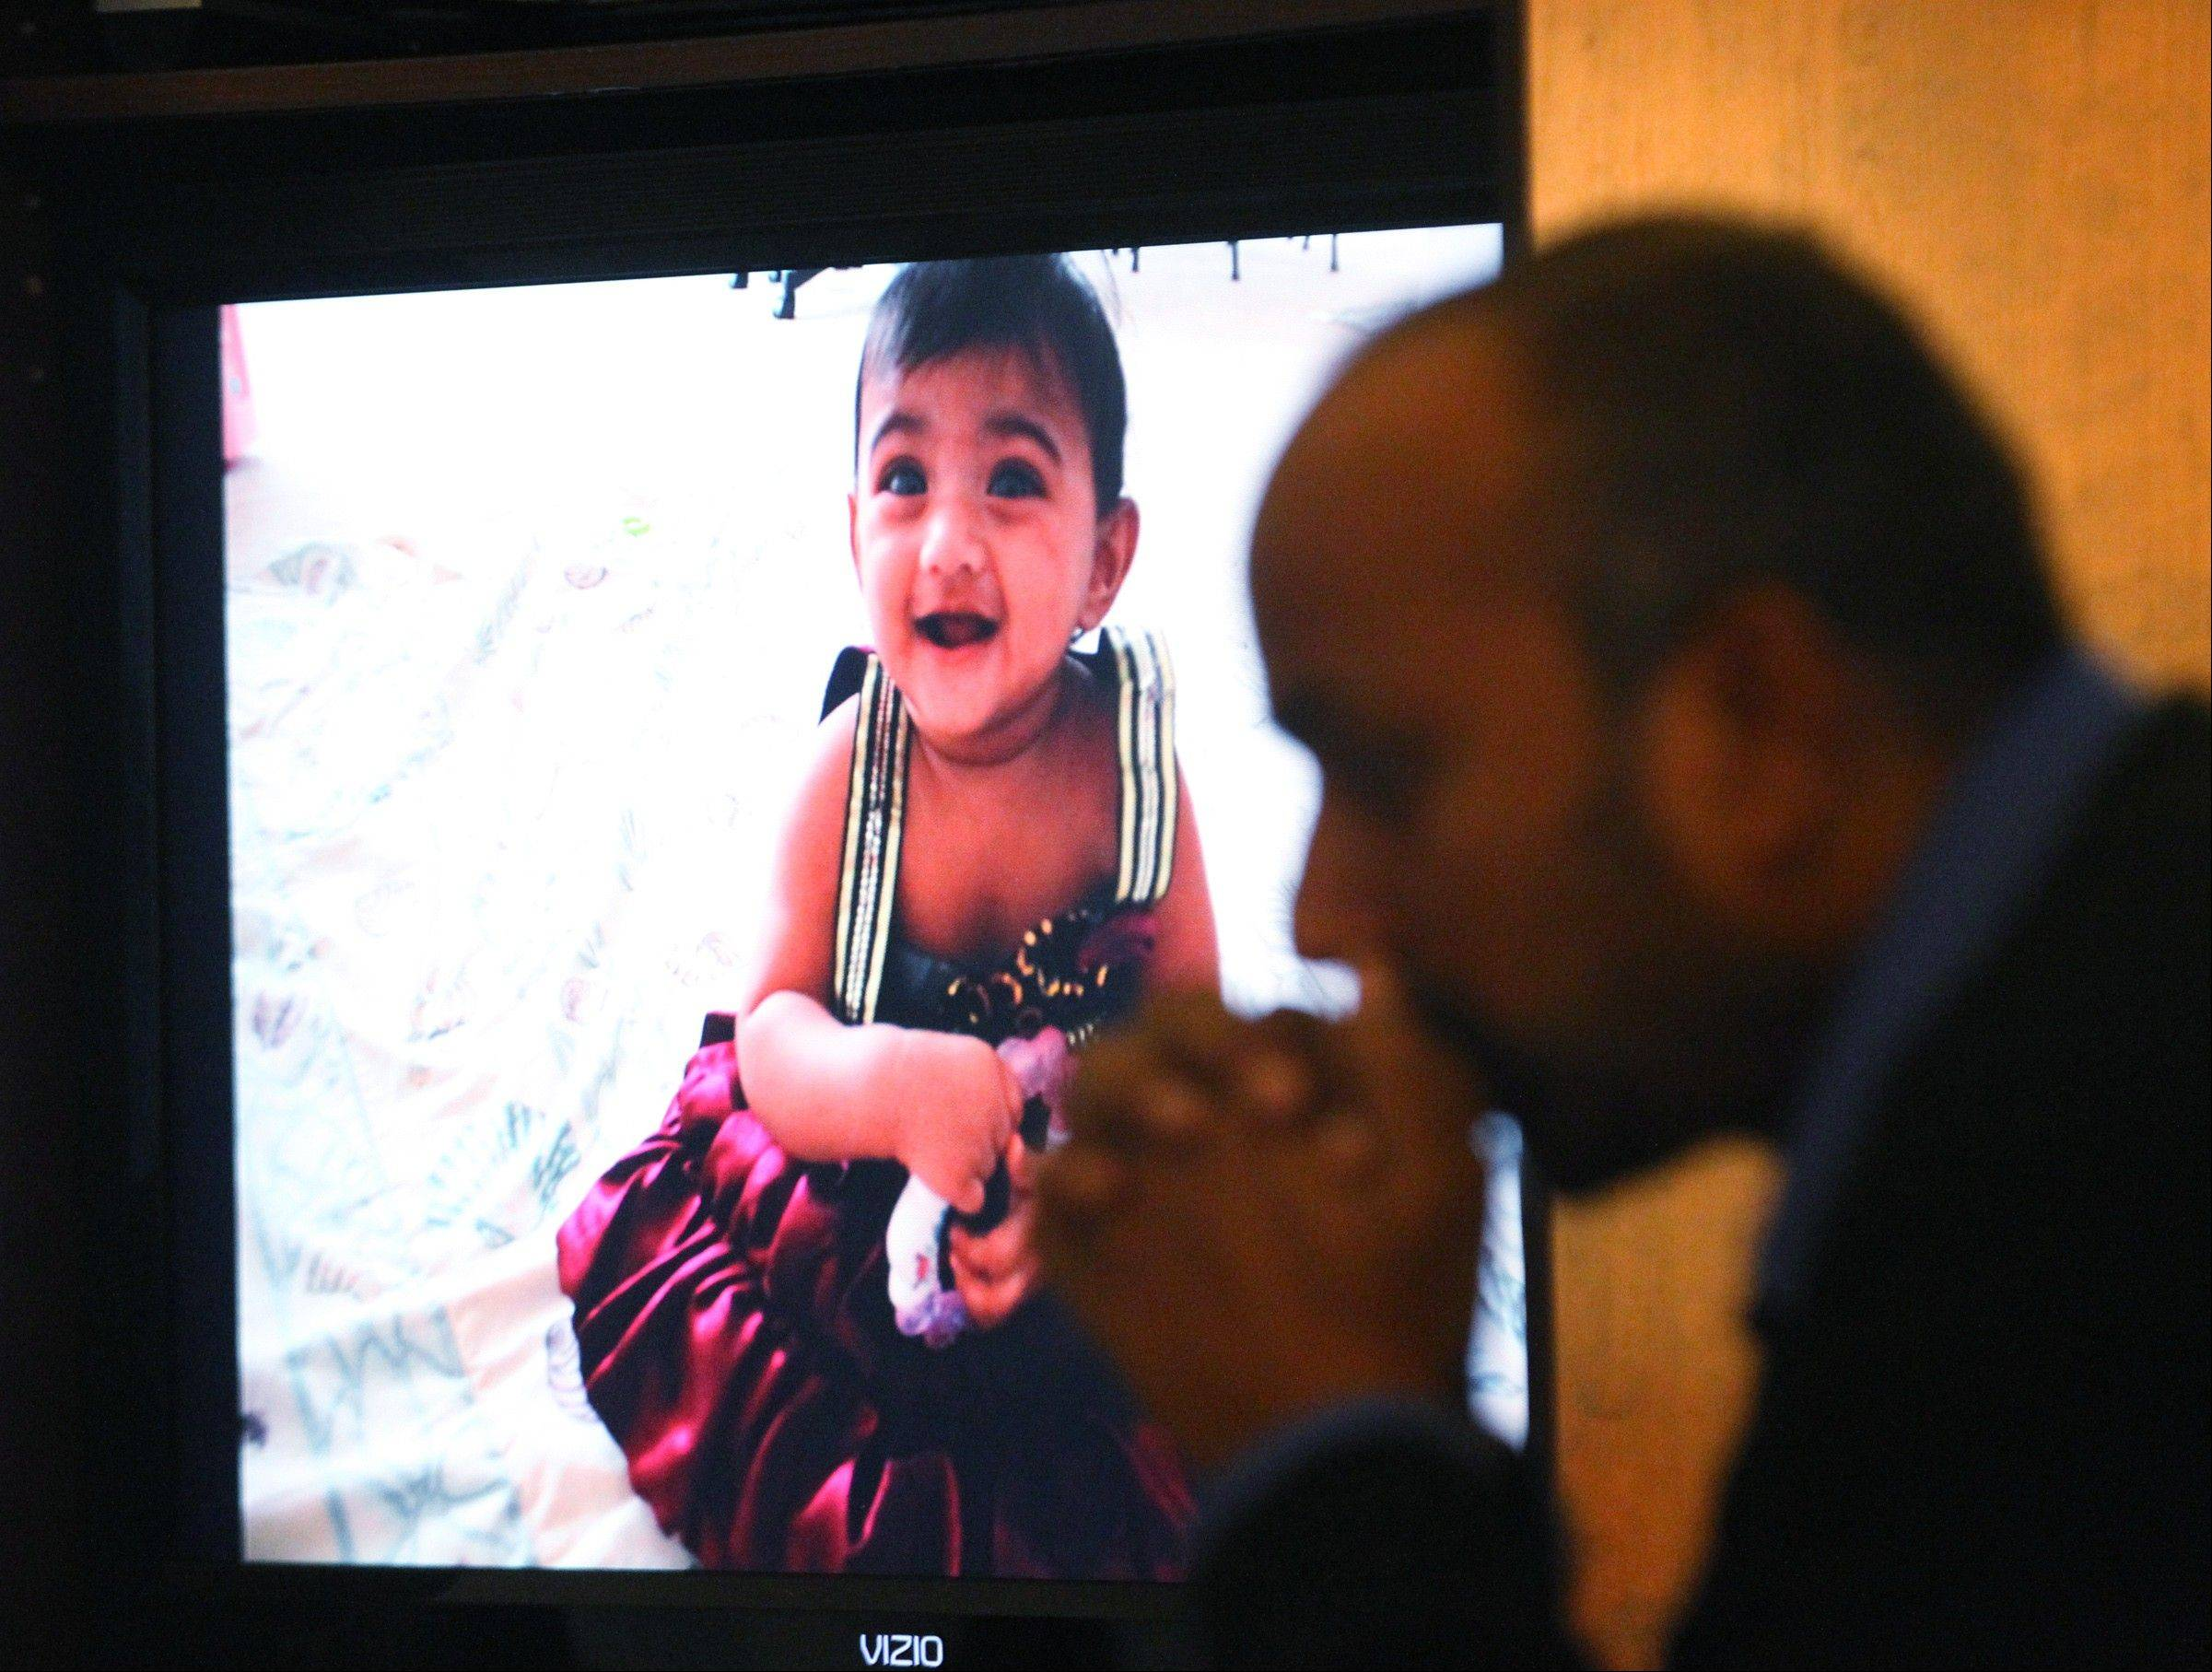 A slideshow of Saanvi Venna plays in the lobby of the Boyd-Horrox Funeral Home in Norristown, Pa., as Subash Karra sits nearby Sunday during a viewing for the 10-month-old girl, who was found dead after being kidnapped last week from her home in a Philadelphia suburb. Saanvi's grandmother was also killed.